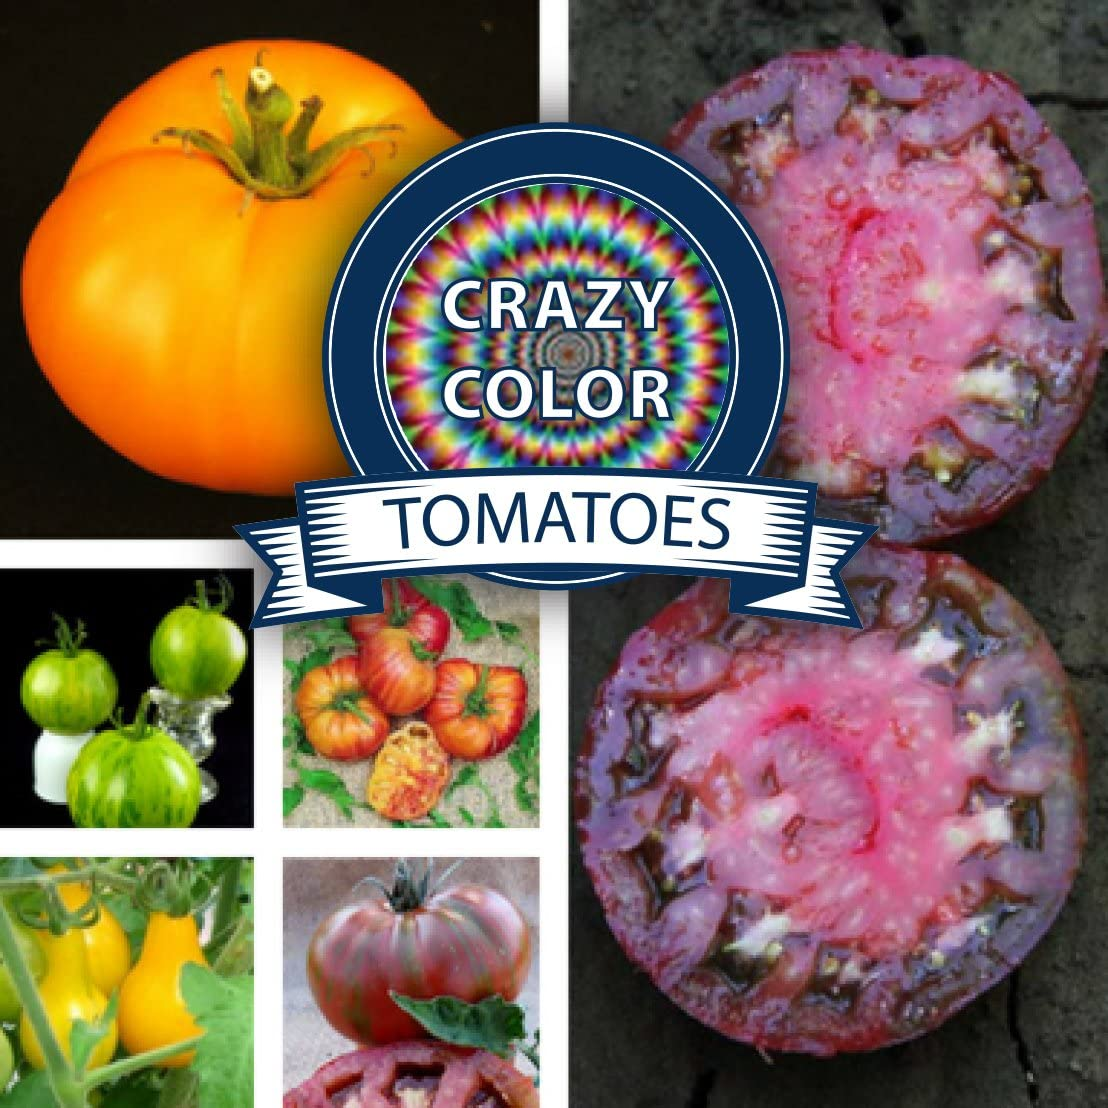 Best Beefsteak Tomato Seed Collection - 6 Variety Pack - Non-GMO Heirloom Beef Steak Tomato Seeds for Planting by Sustainable Seed Company (Collection Only)